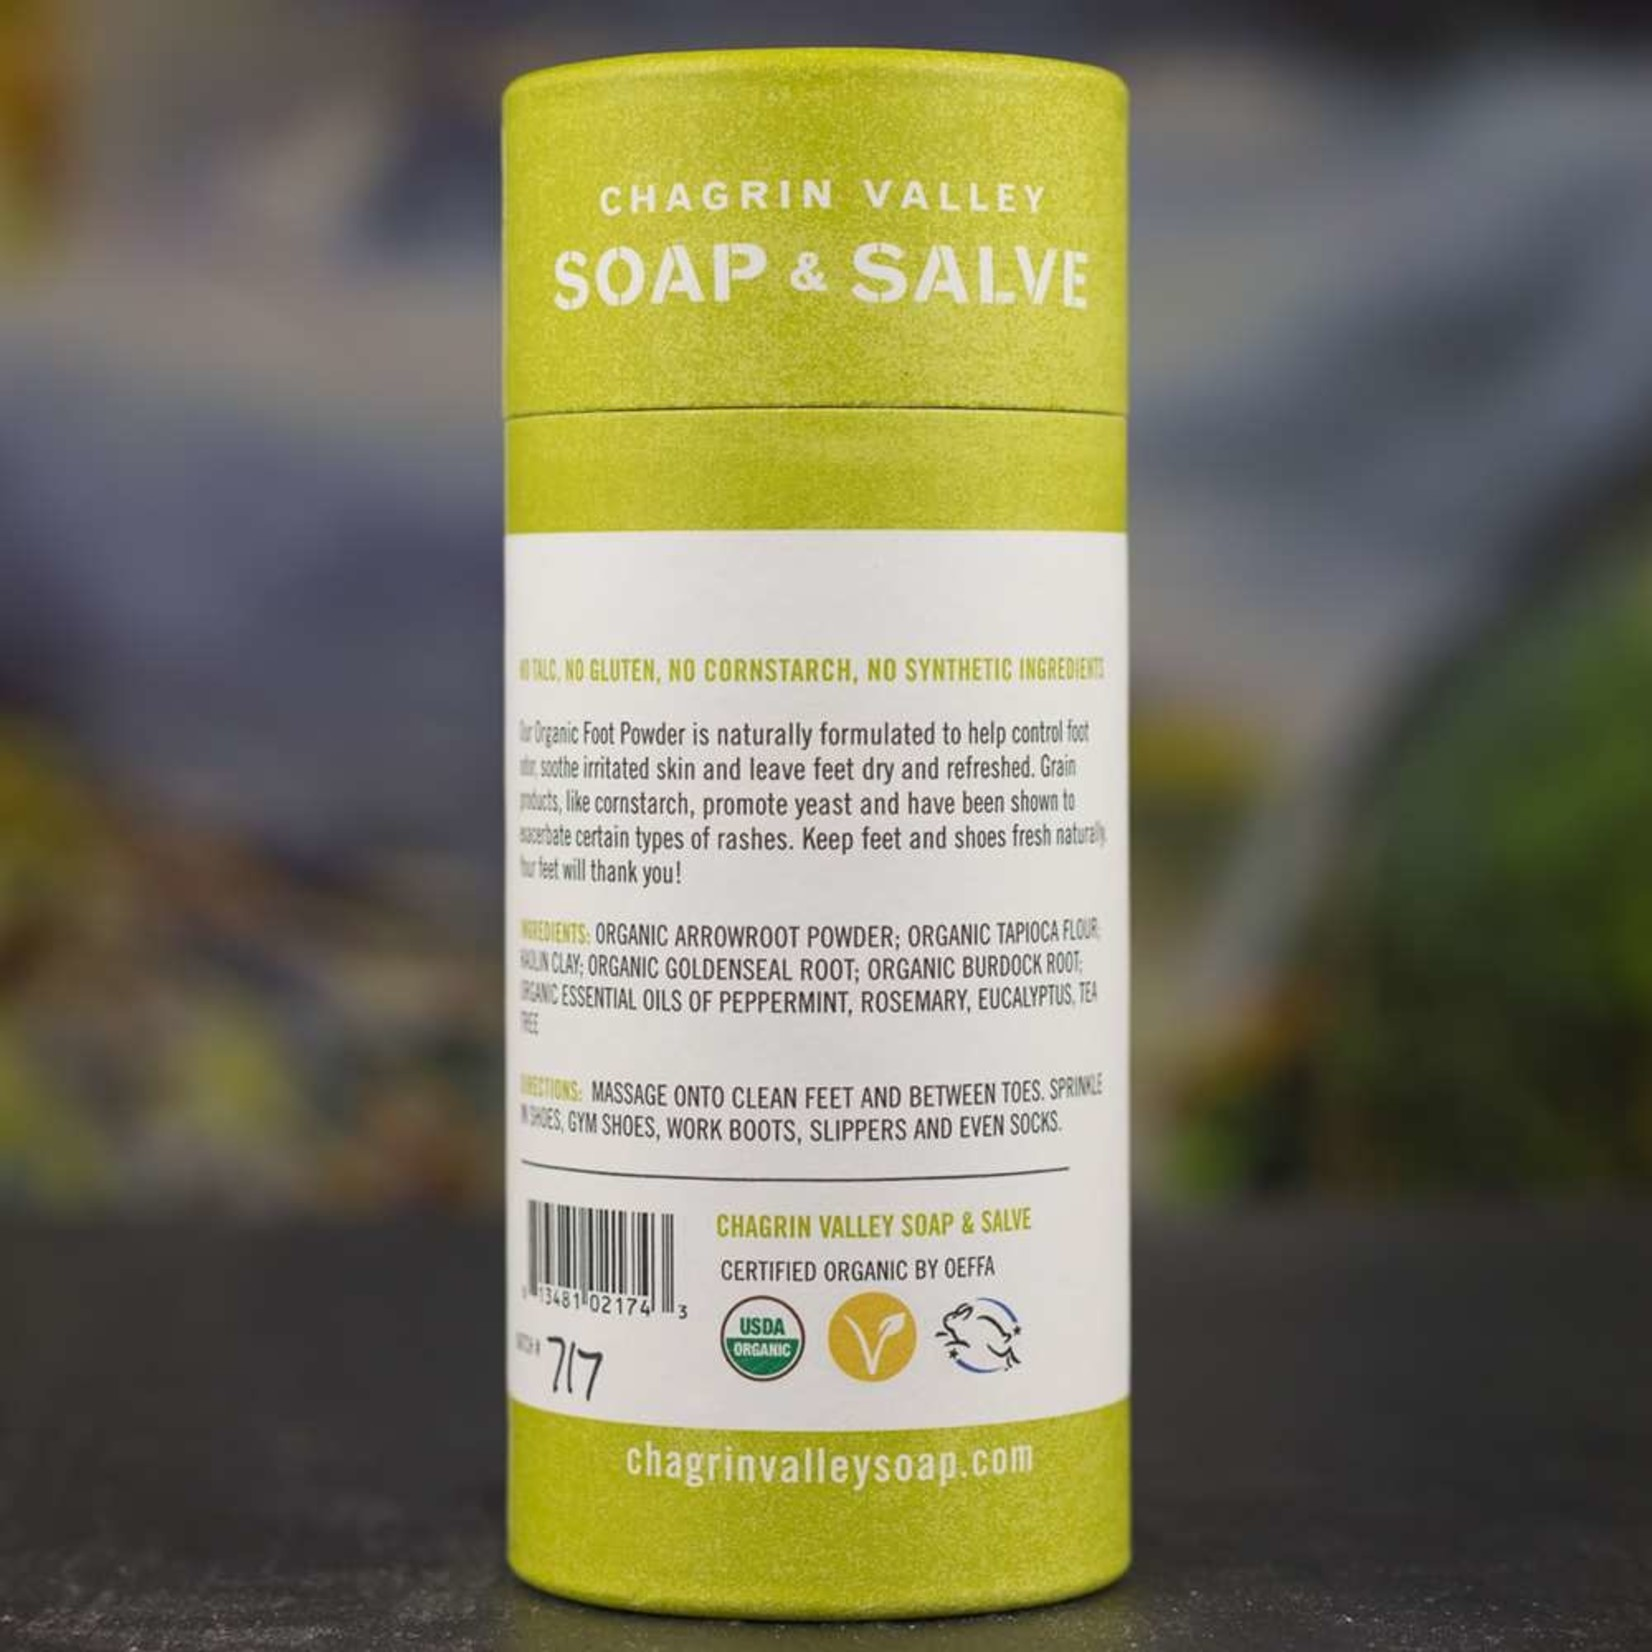 Chagrin Valley Soap and Salve Refreshing & Invigorating scent 4.5oz Foot Powder